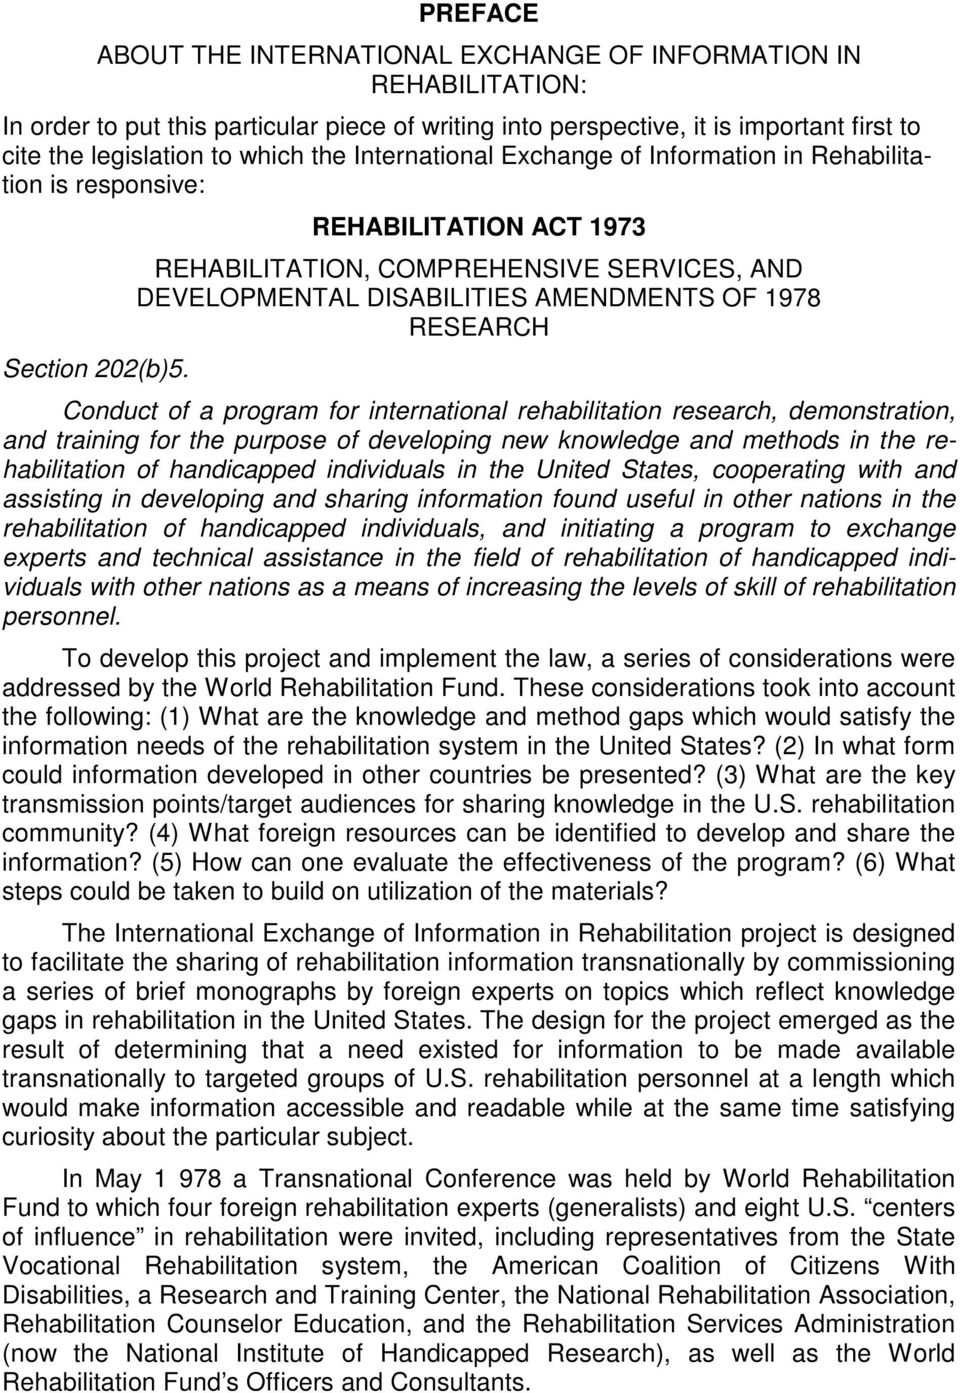 REHABILITATION ACT 1973 REHABILITATION, COMPREHENSIVE SERVICES, AND DEVELOPMENTAL DISABILITIES AMENDMENTS OF 1978 RESEARCH Conduct of a program for international rehabilitation research,